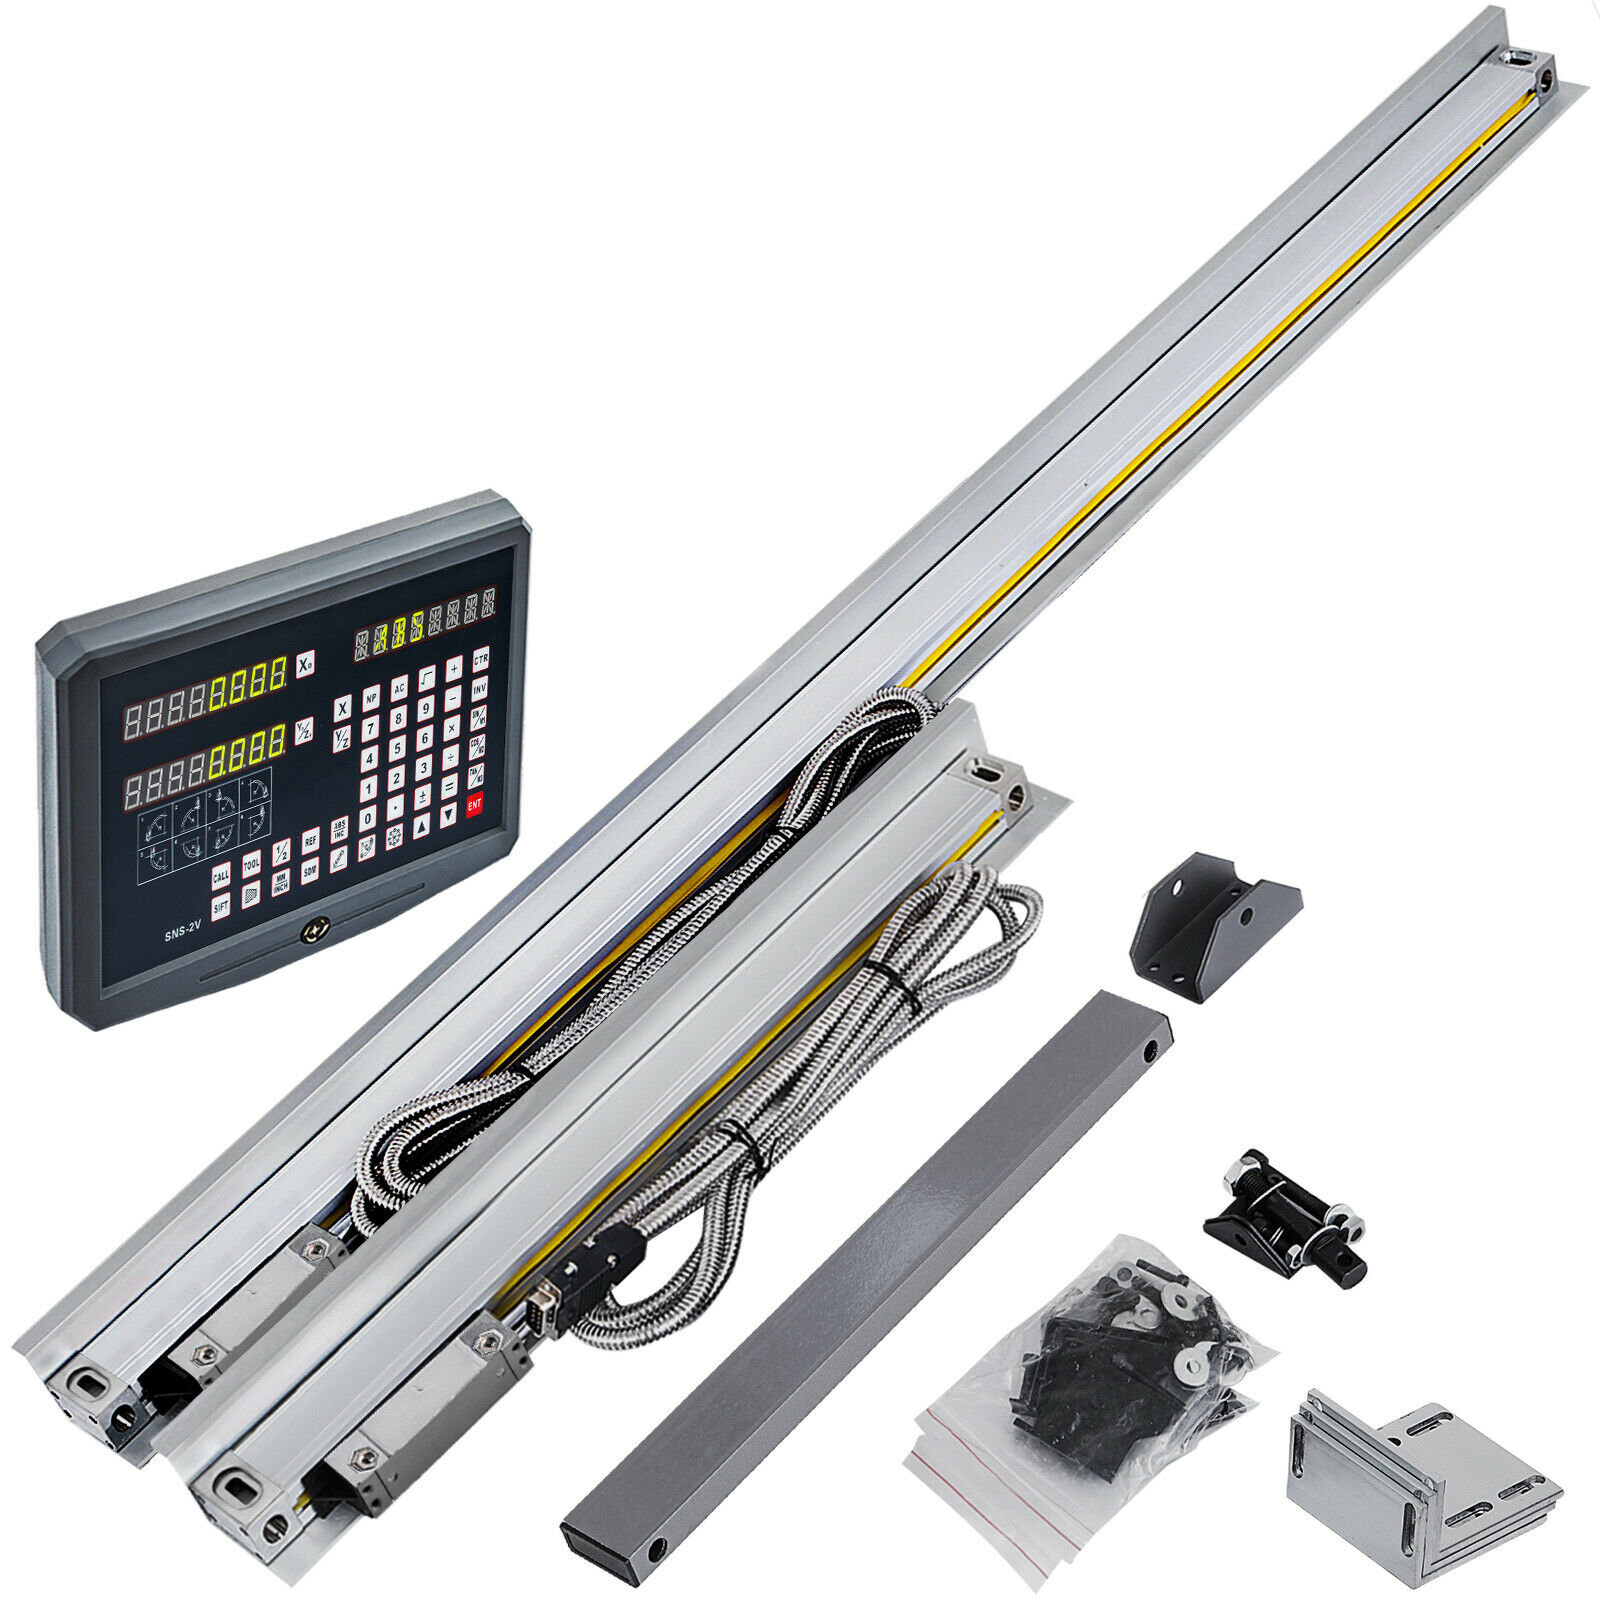 2 Axis Precision Linear Scale Digital Readout DRO for Milling Lathe Machine 400mm + 850mm ,DHL,4-7 Business Days